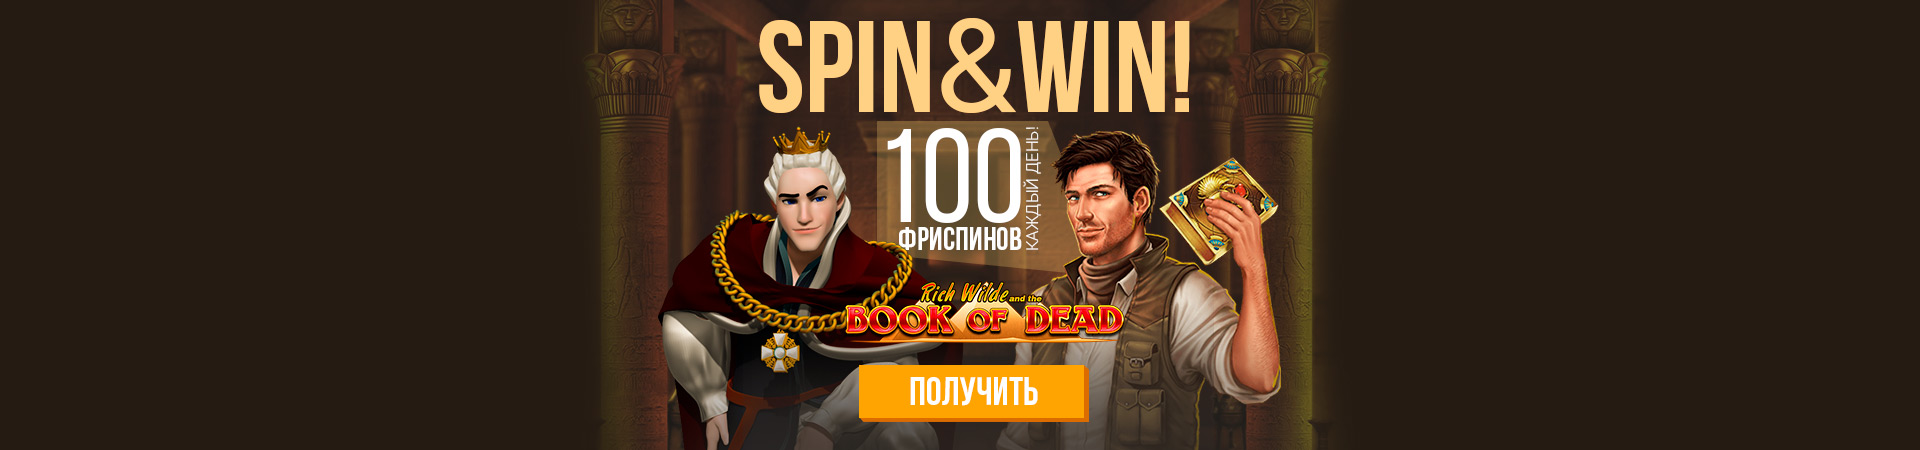 2020 07 King Billy Russian Spin And Win Book Of Dead 1920x450